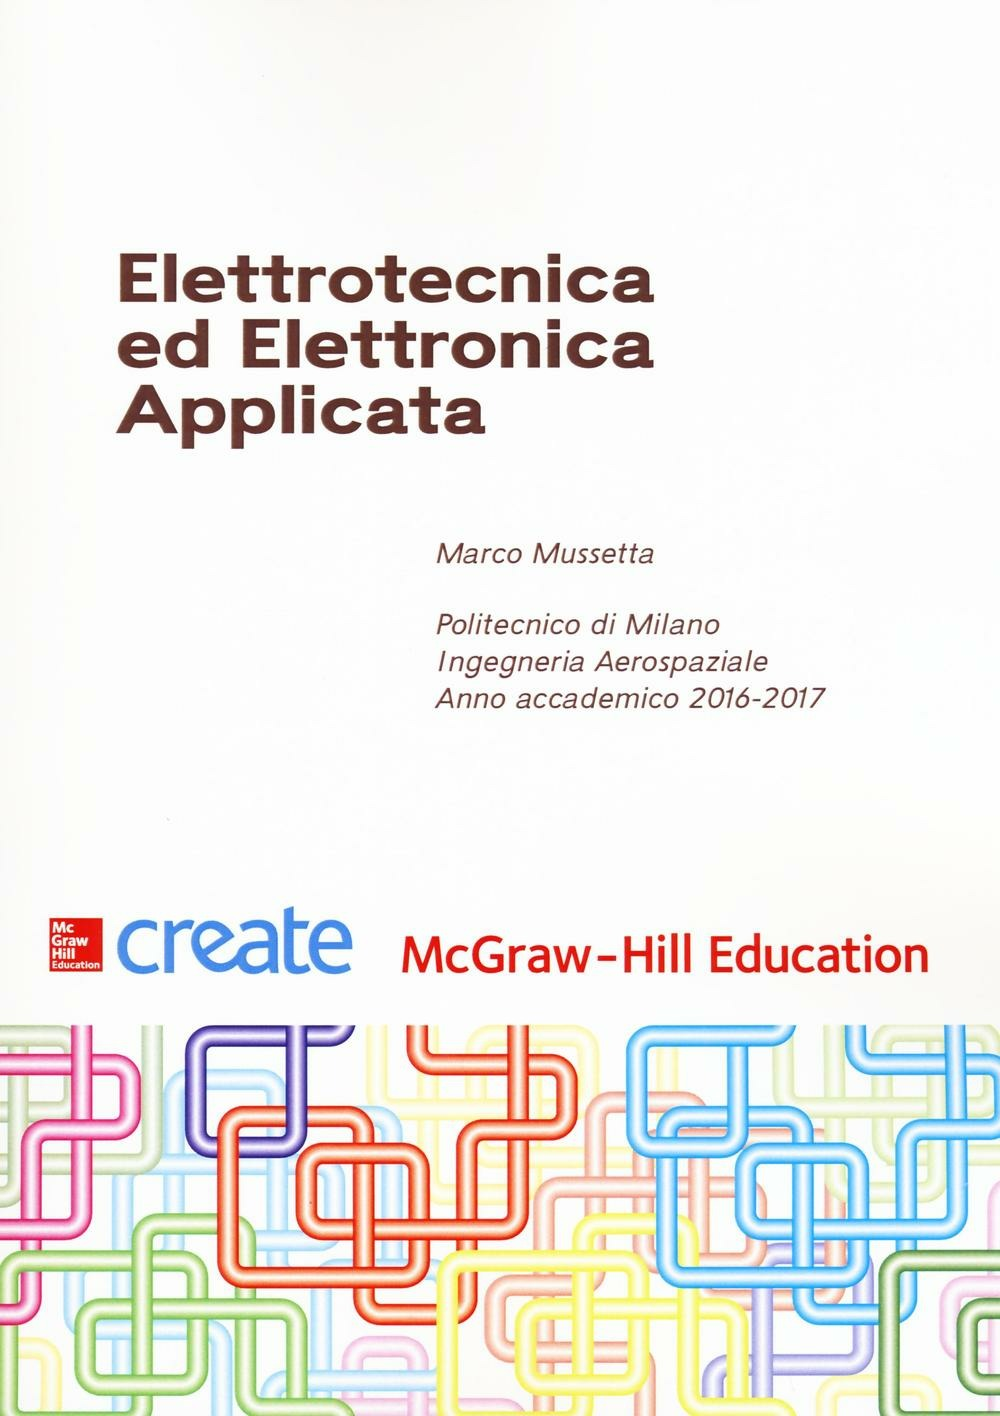 Elettrotecnica ed elettronica applicata